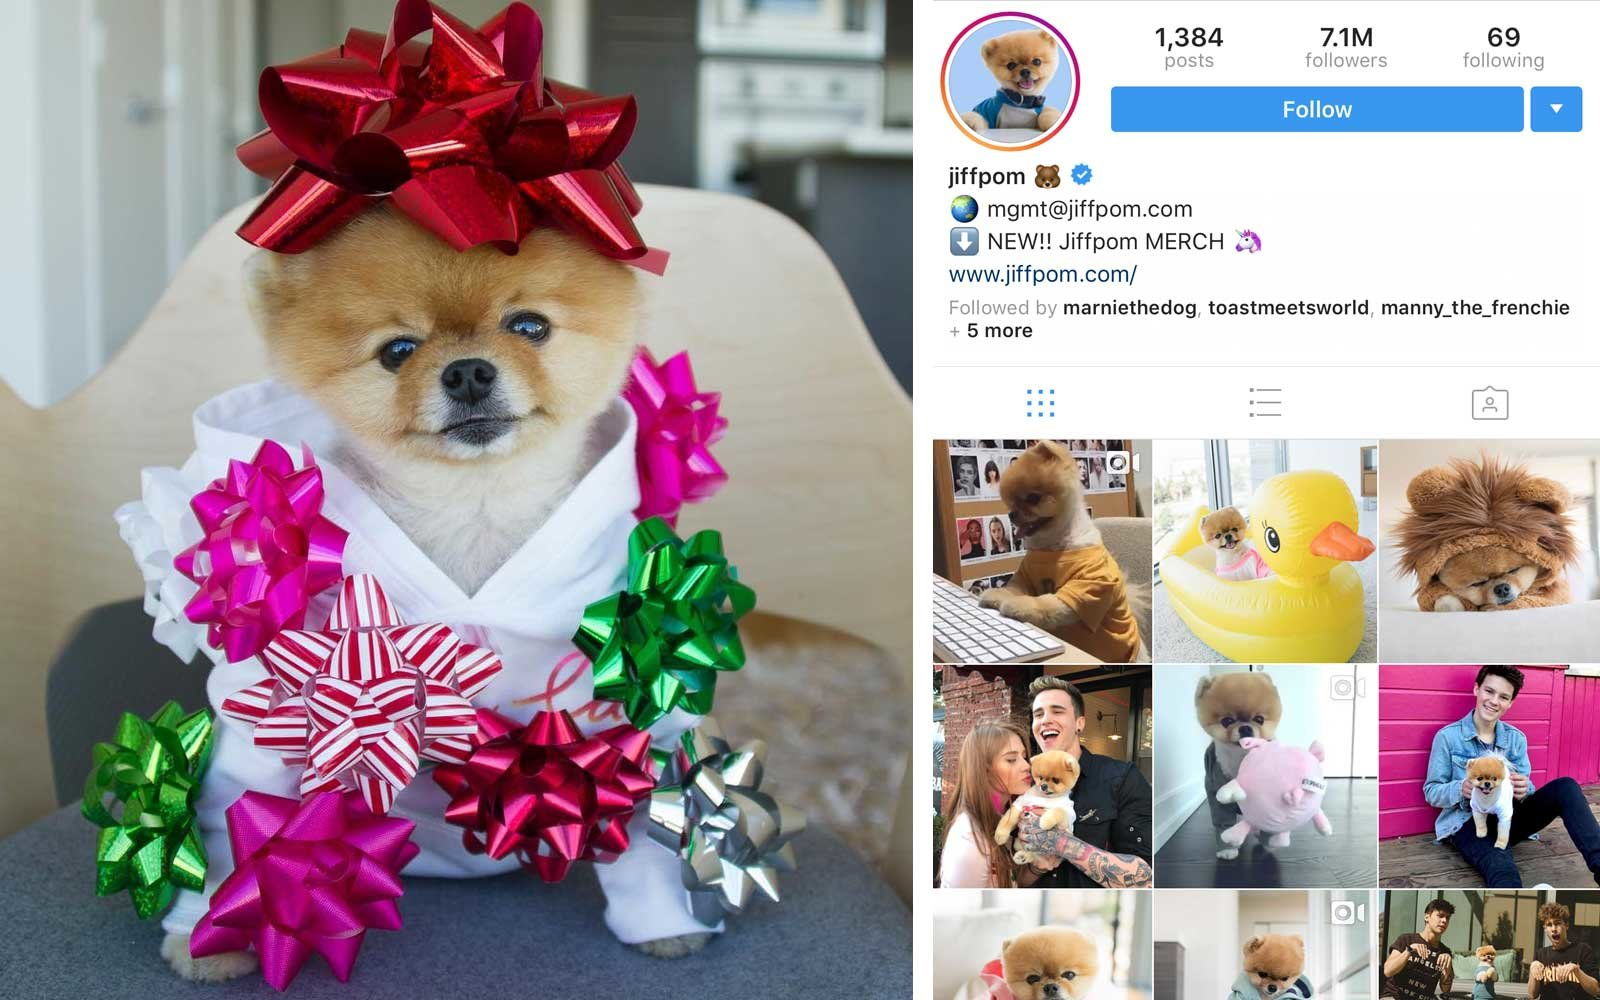 Jiffpom (@jiffpom) - Pomeranian, US - 7M Followers